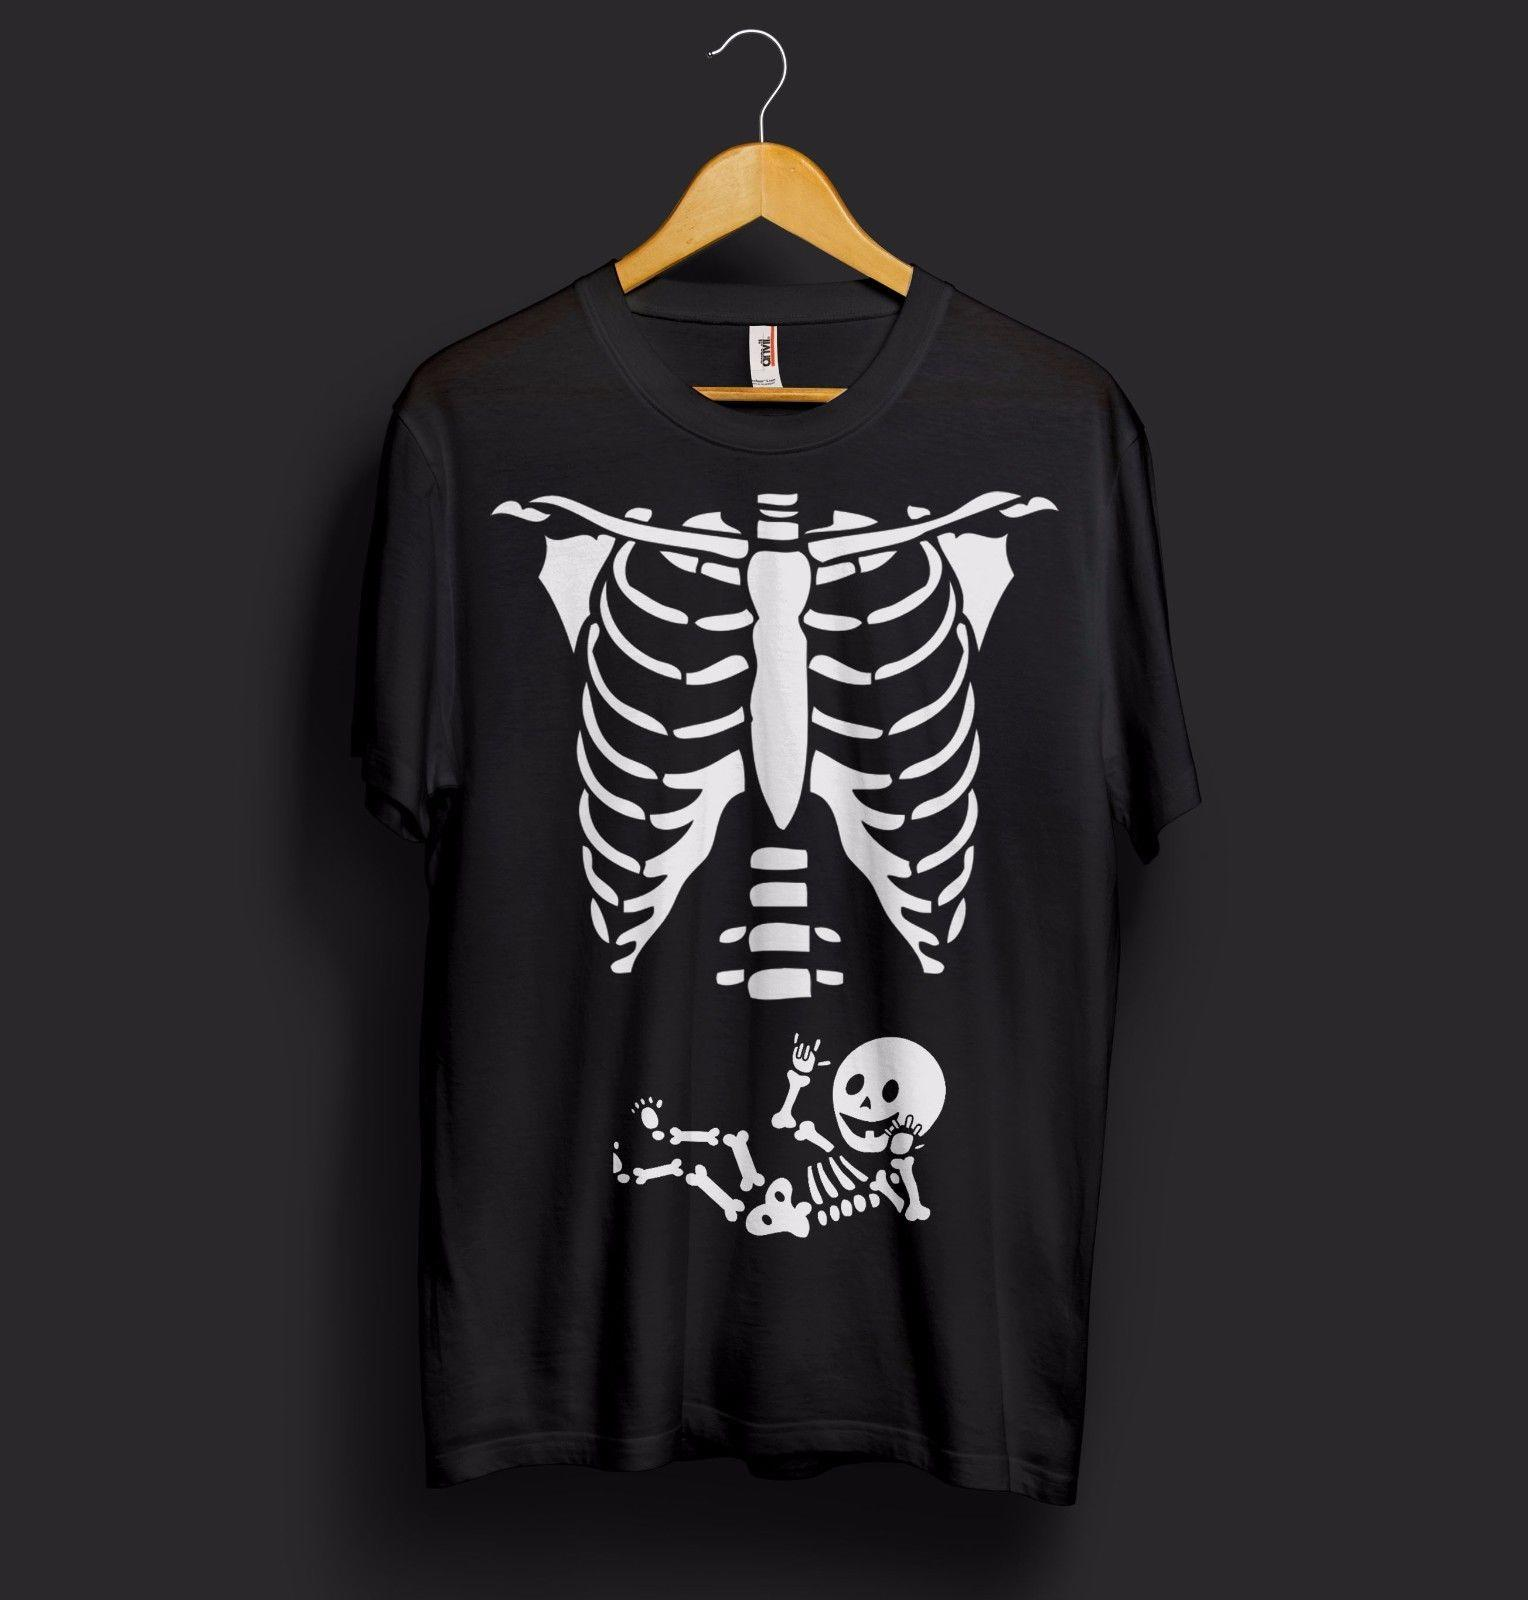 e81b9c73434f0 Maternity Baby Skeleton Halloween T Shirt Top Bones Funny Scary Loading  Pregnant Printed Men T Shirt Short Sleeve Funny T Shirt Slogans Dirty T  Shirts From ...